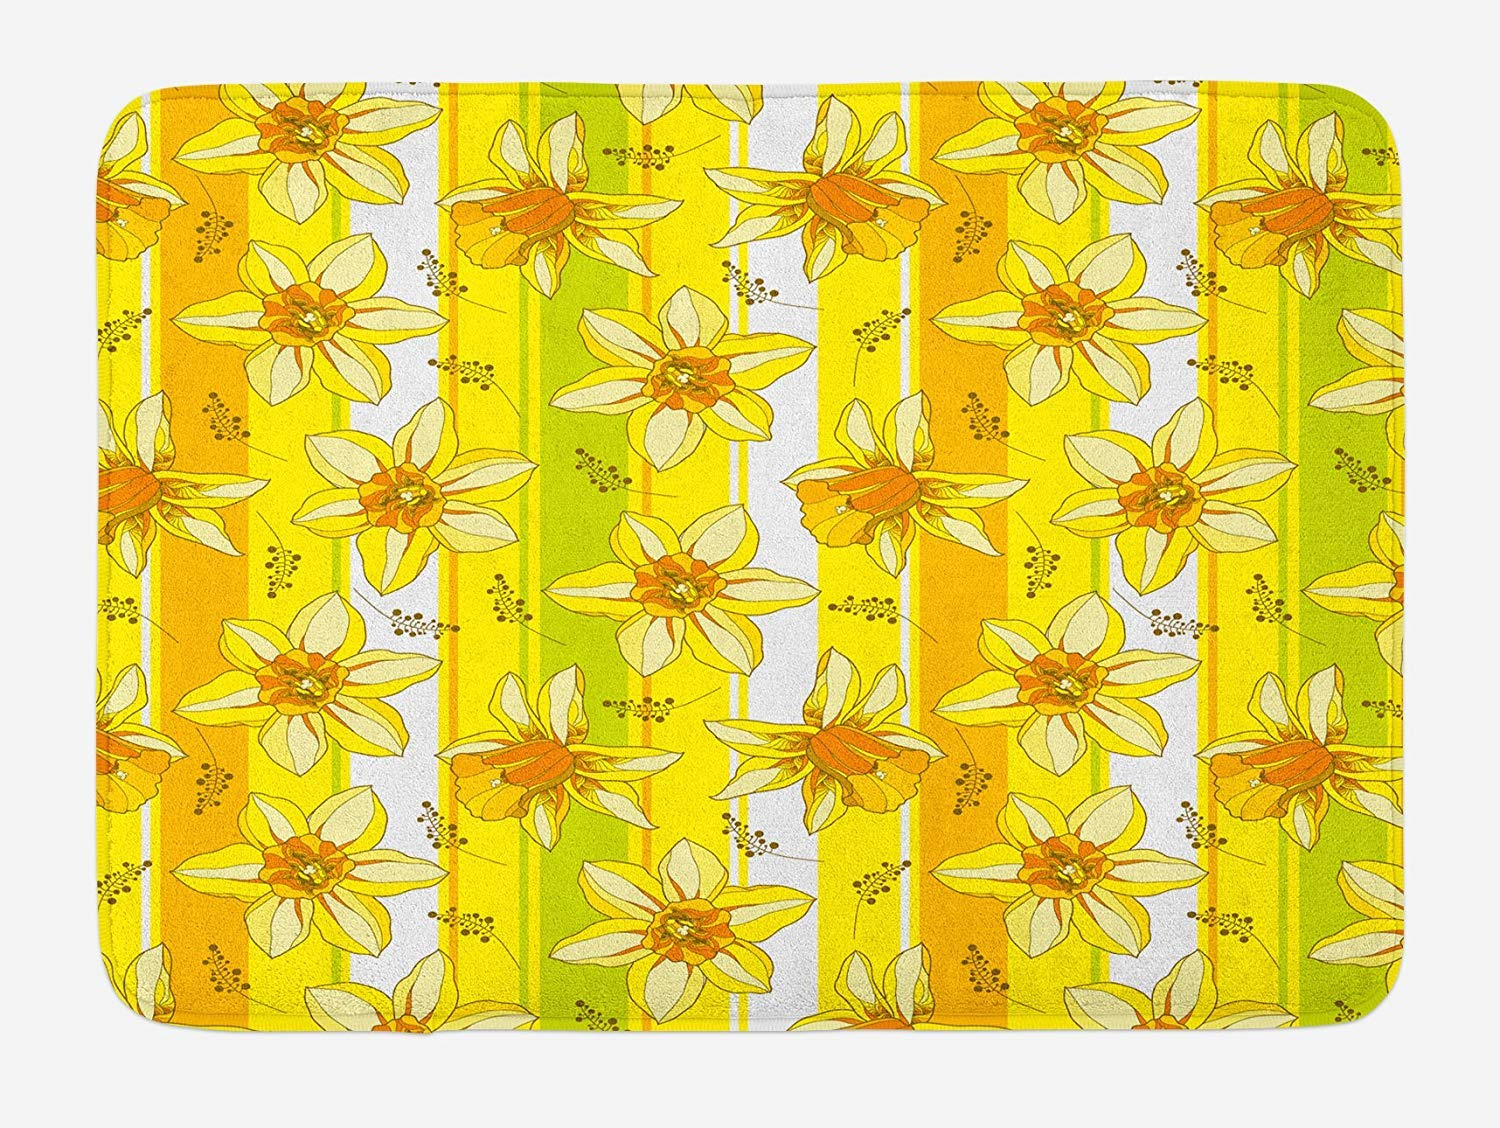 TAQATS Yellow Flower Bath Mat, Floral Spring Narcissus and Daffodil Jonquil Blooms Striped Backdrop, Plush Bathroom Decor Mat with Non Slip Backing, 23.6 W X 15.7 W Inches, Yellow Apple Green